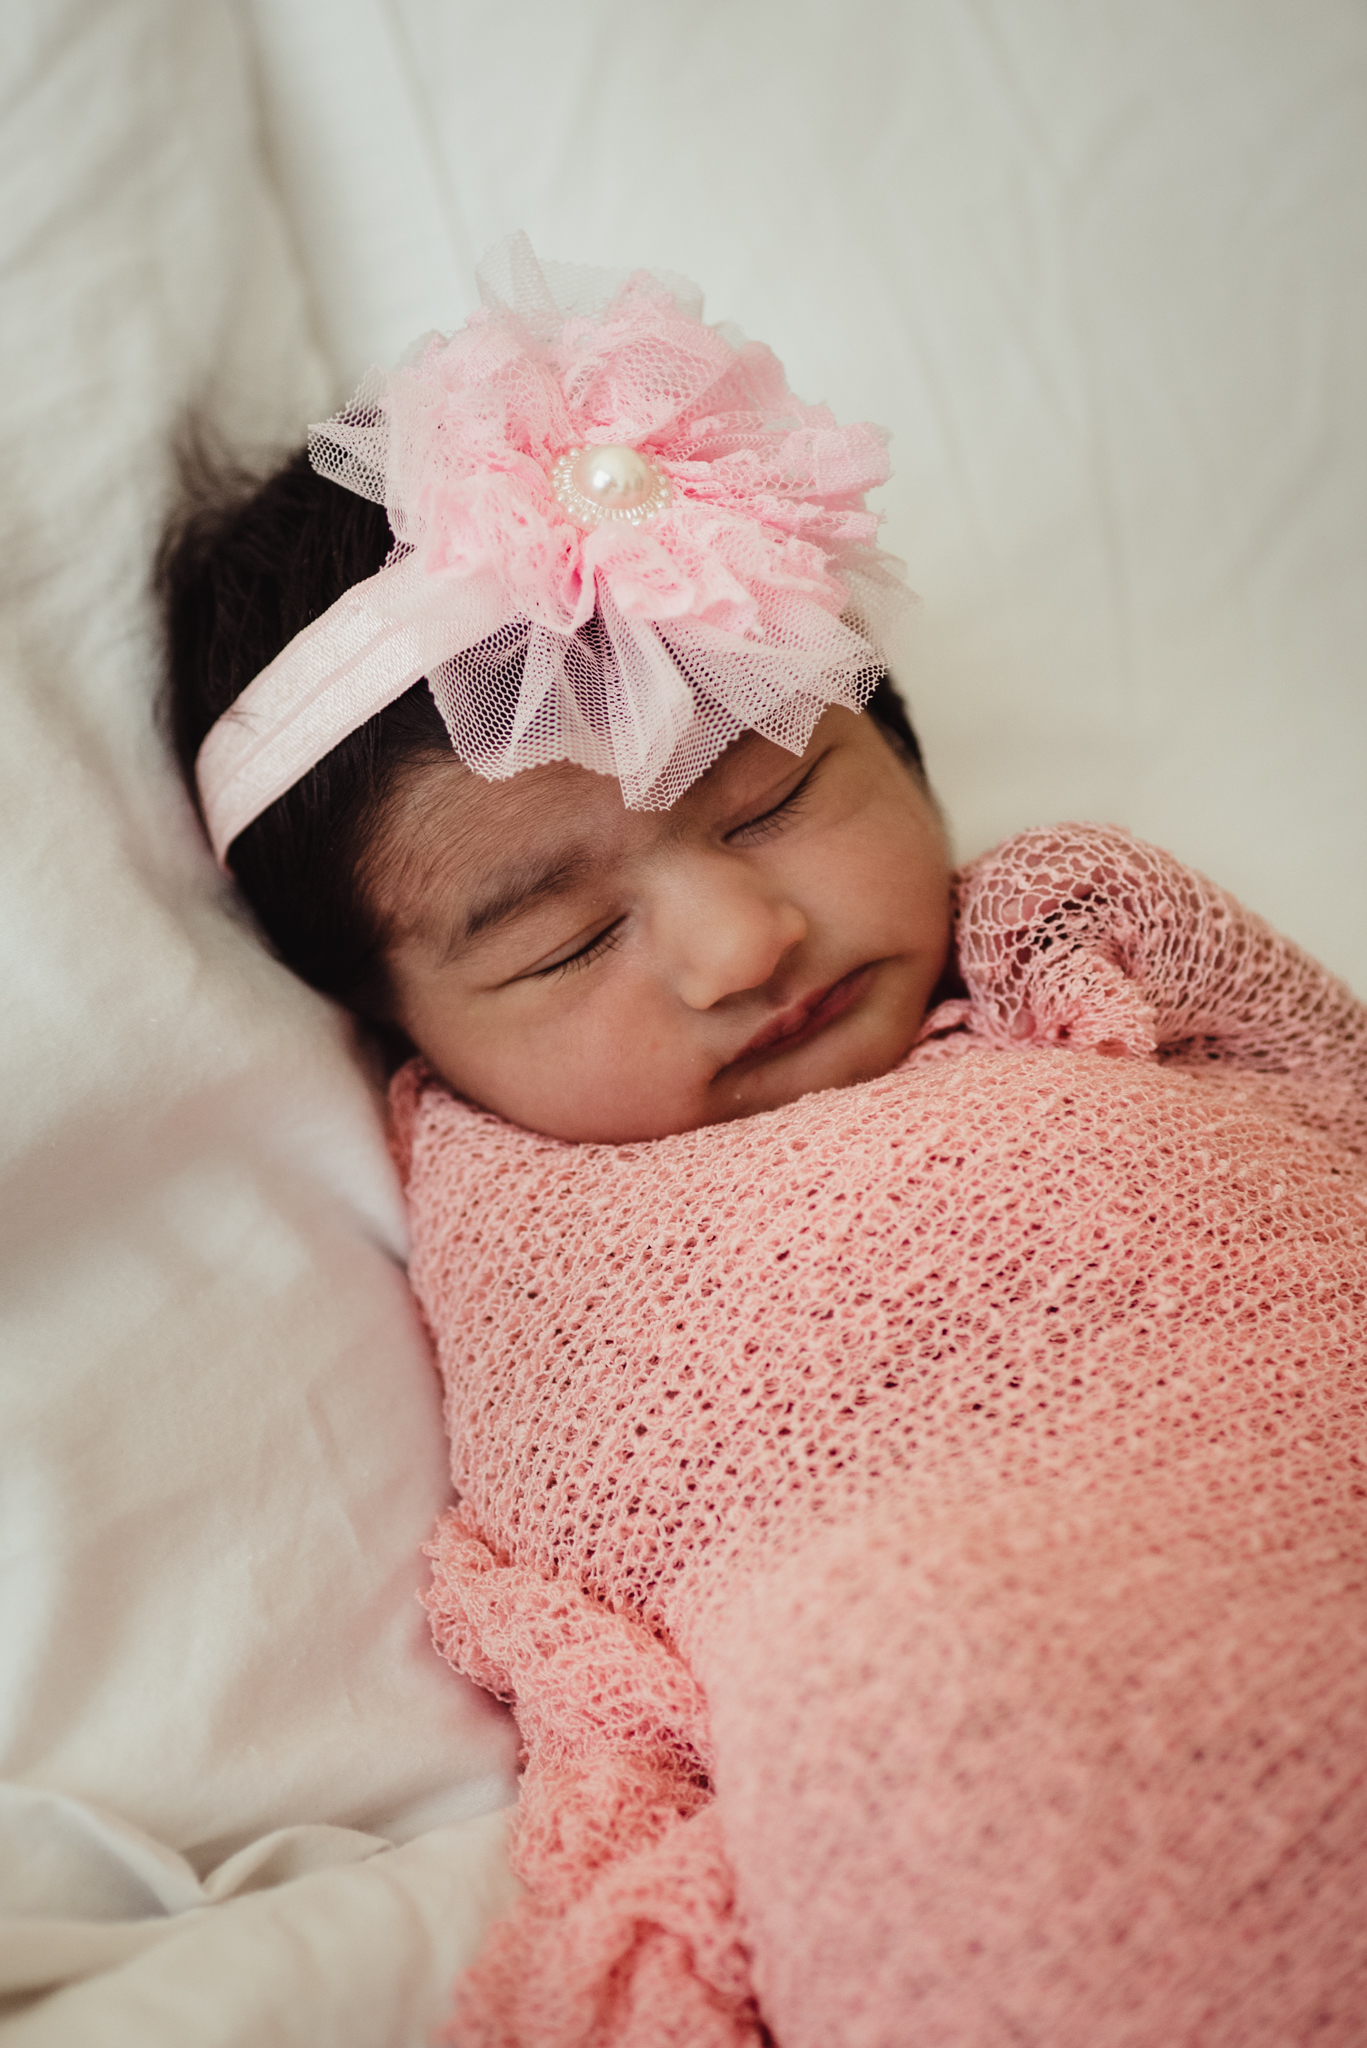 The newborn baby girl sleeps during her lifestyle newborn session with Rose Trail Images in Raleigh, North Carolina.